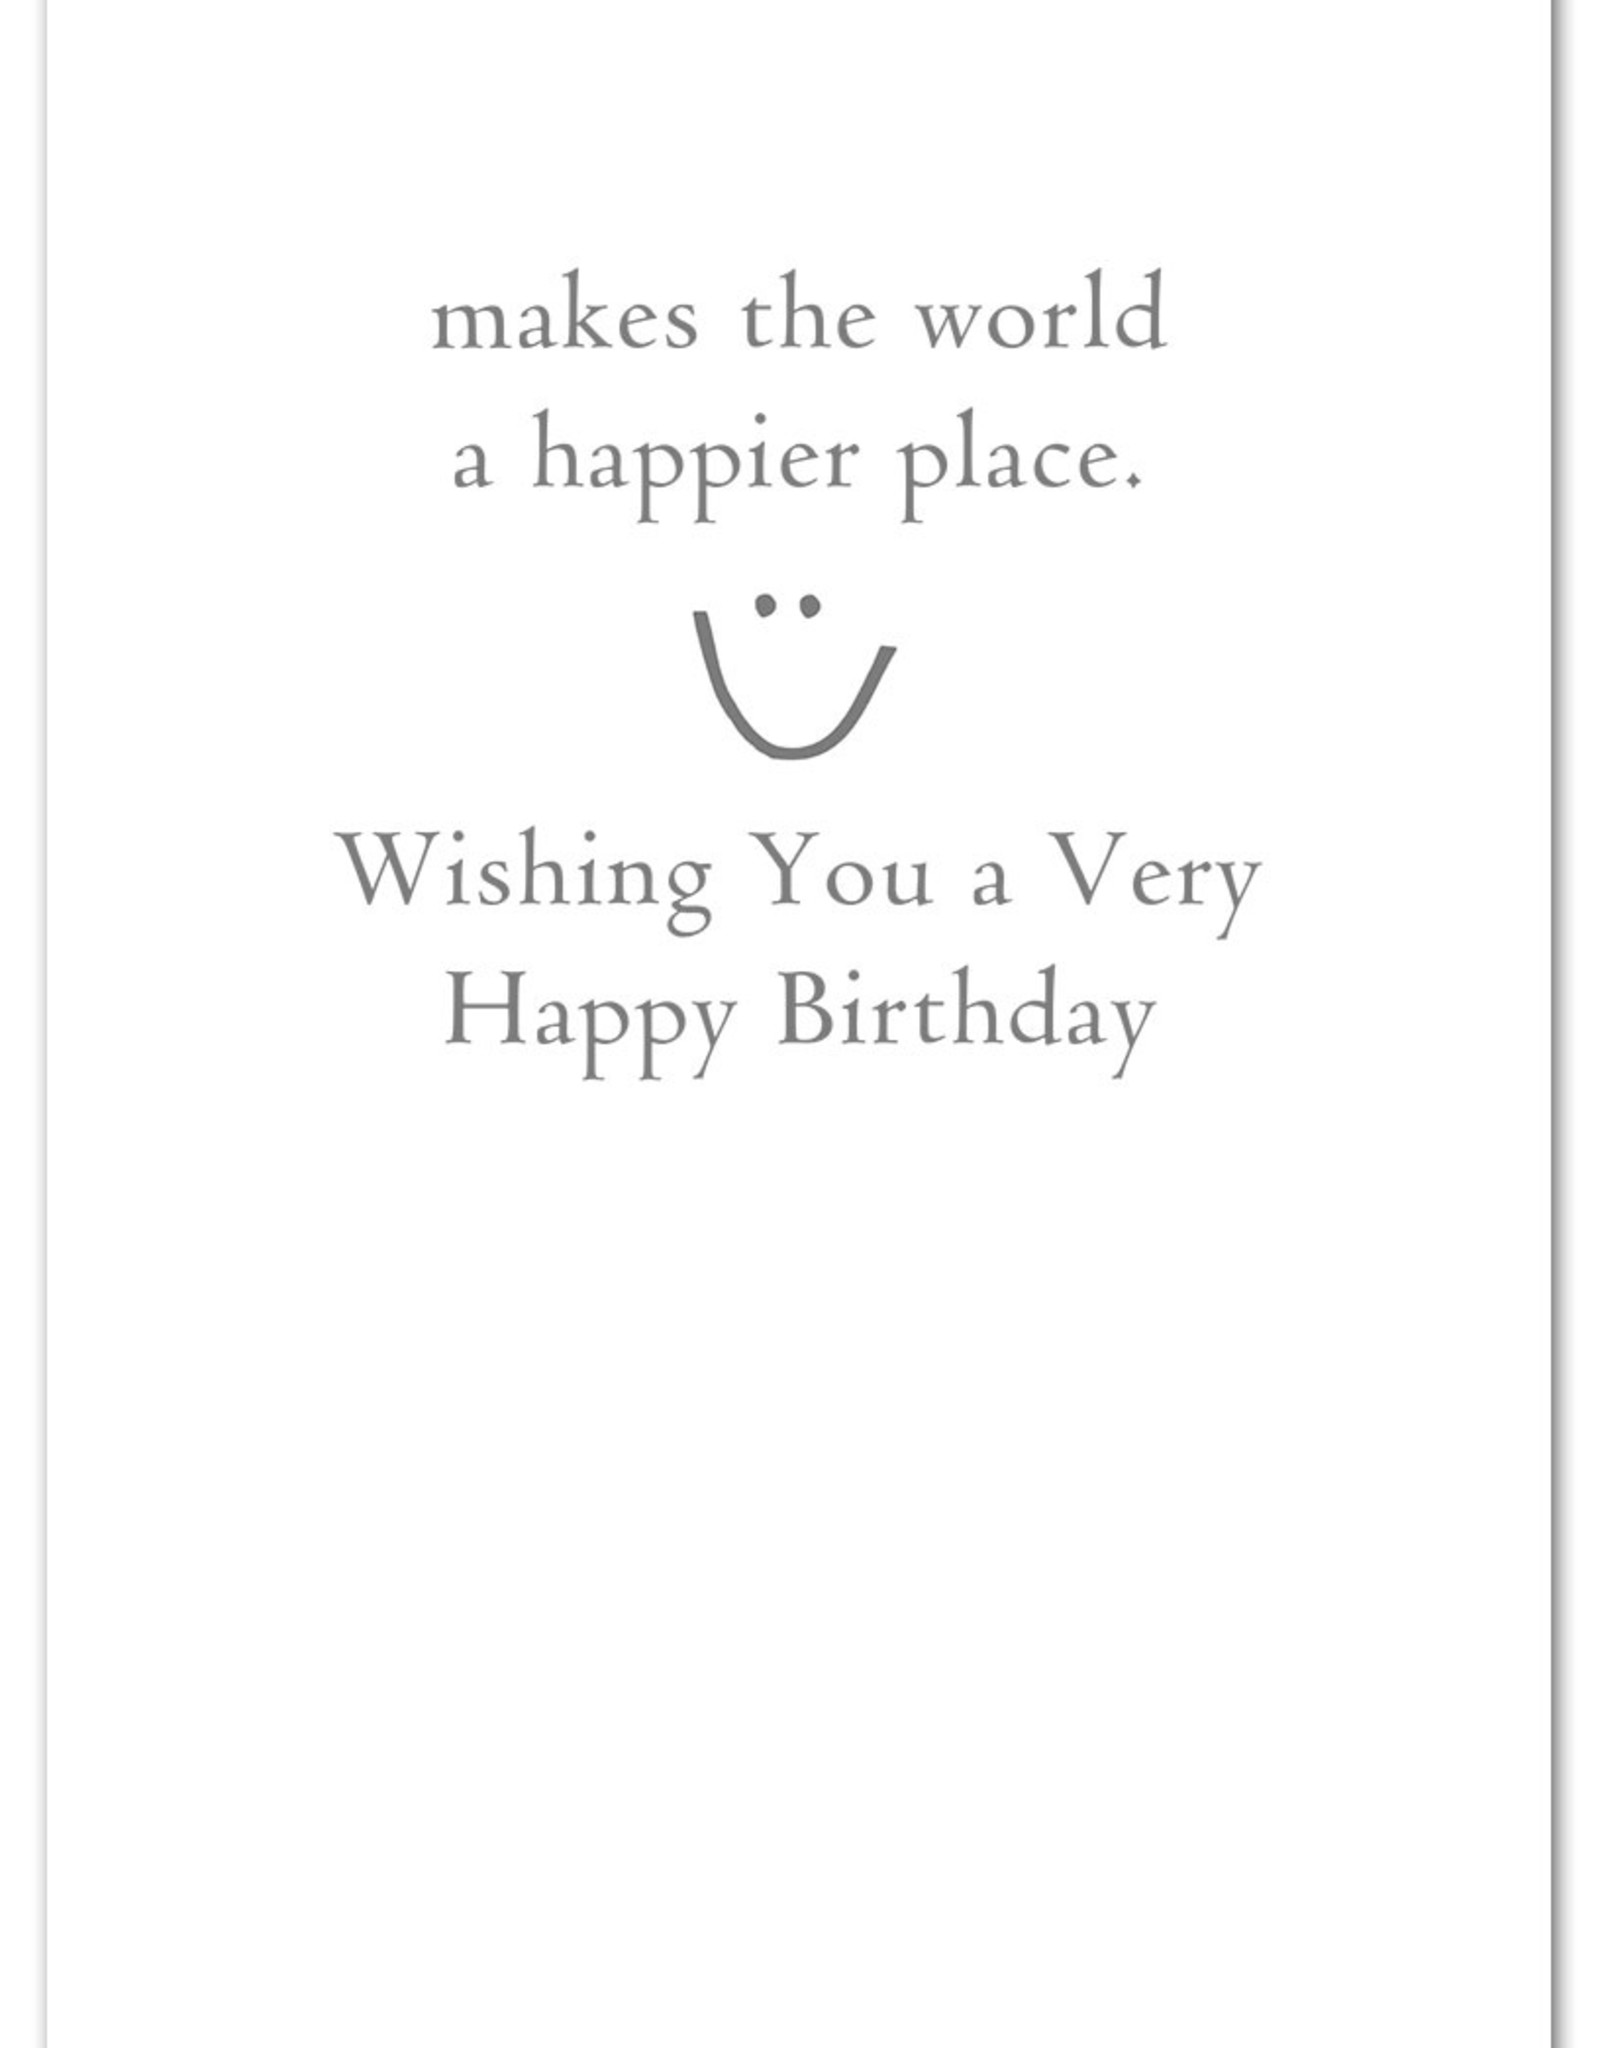 Cardthartic Cardthartic - Blue Sneakers Birthday Card